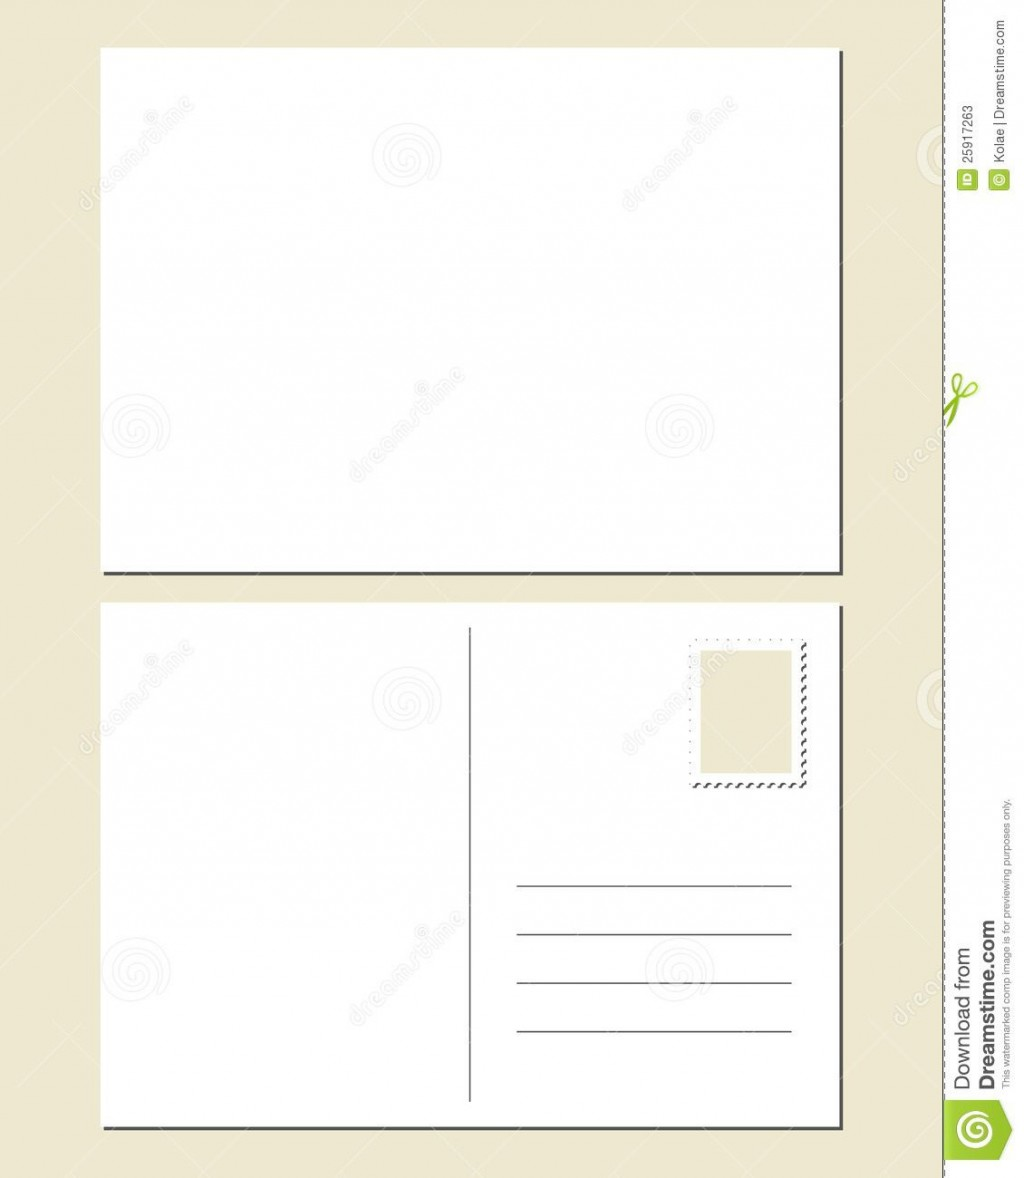 007 Breathtaking Postcard Front And Back Template Free Image  To SchoolLarge